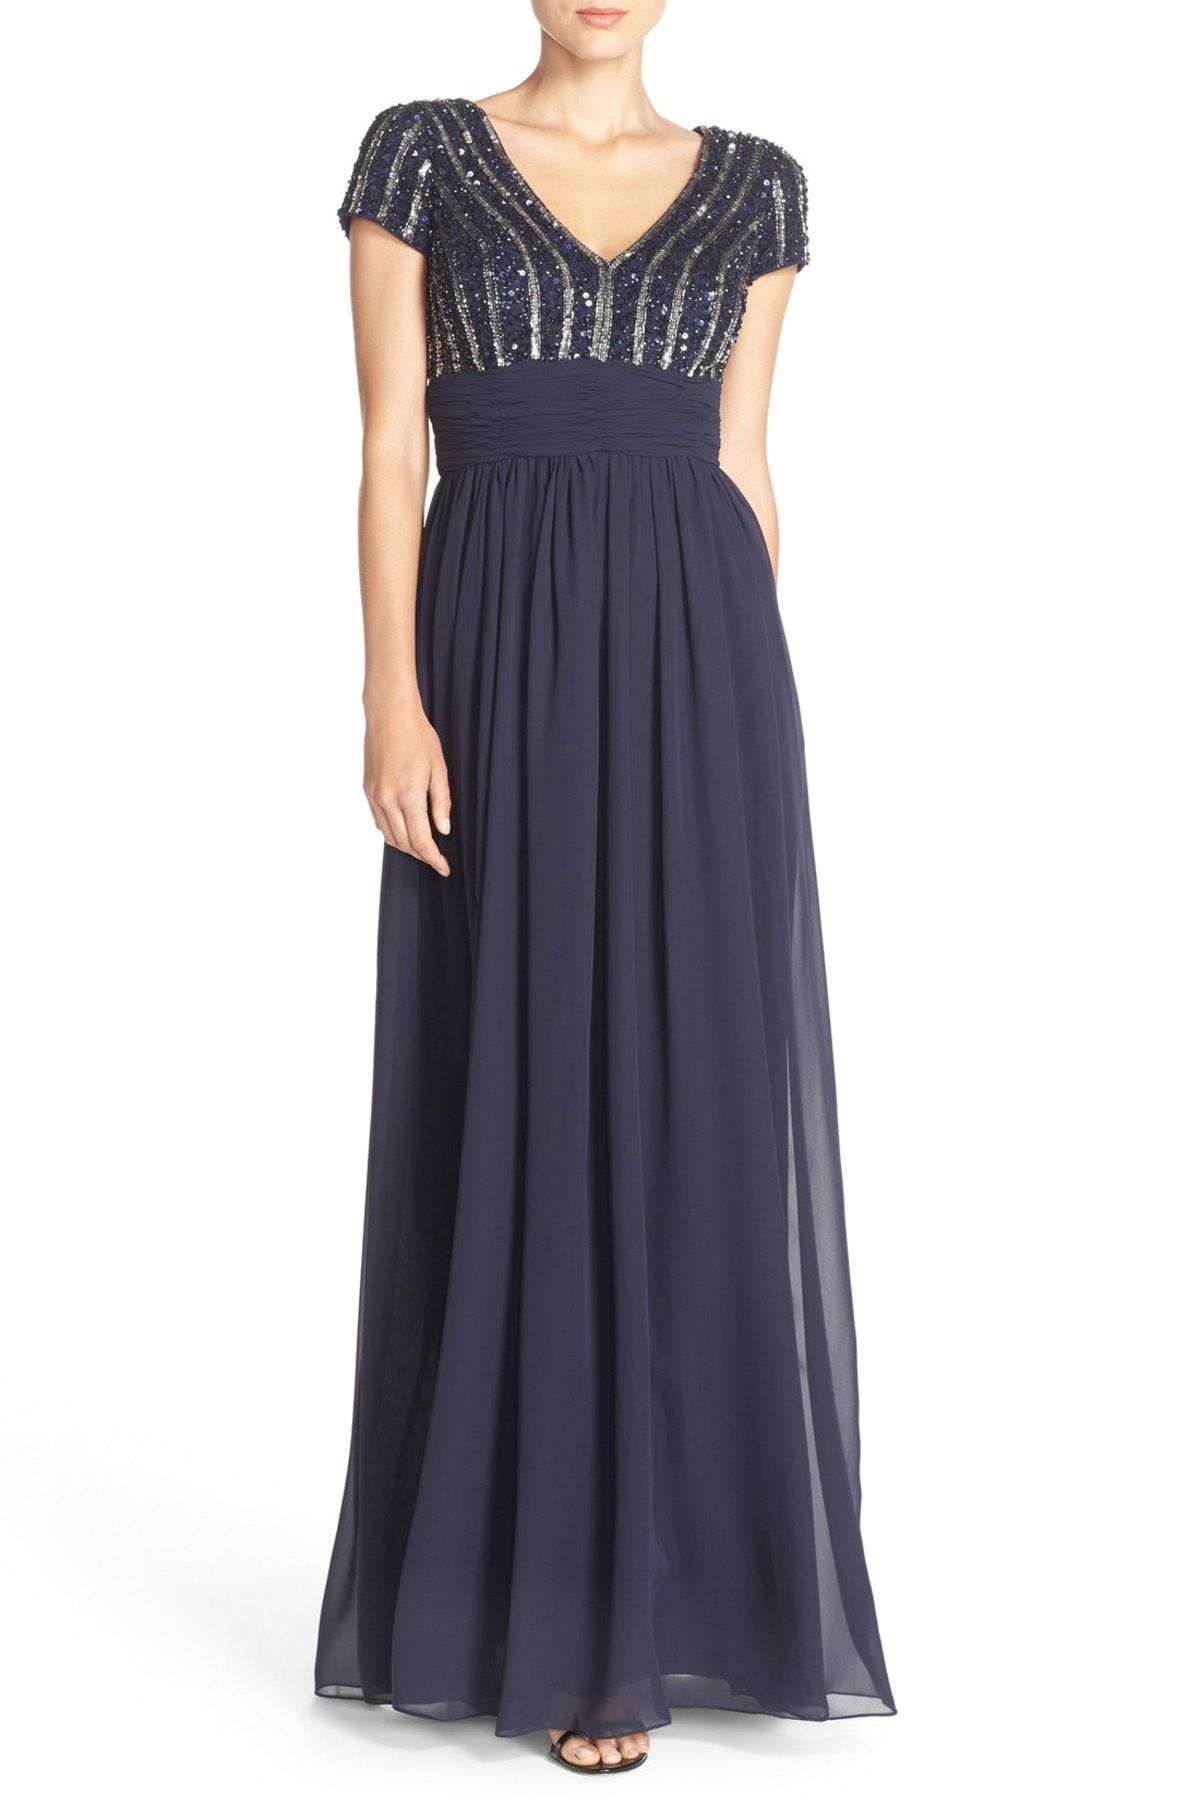 Embellished Chiffon Empire Gown